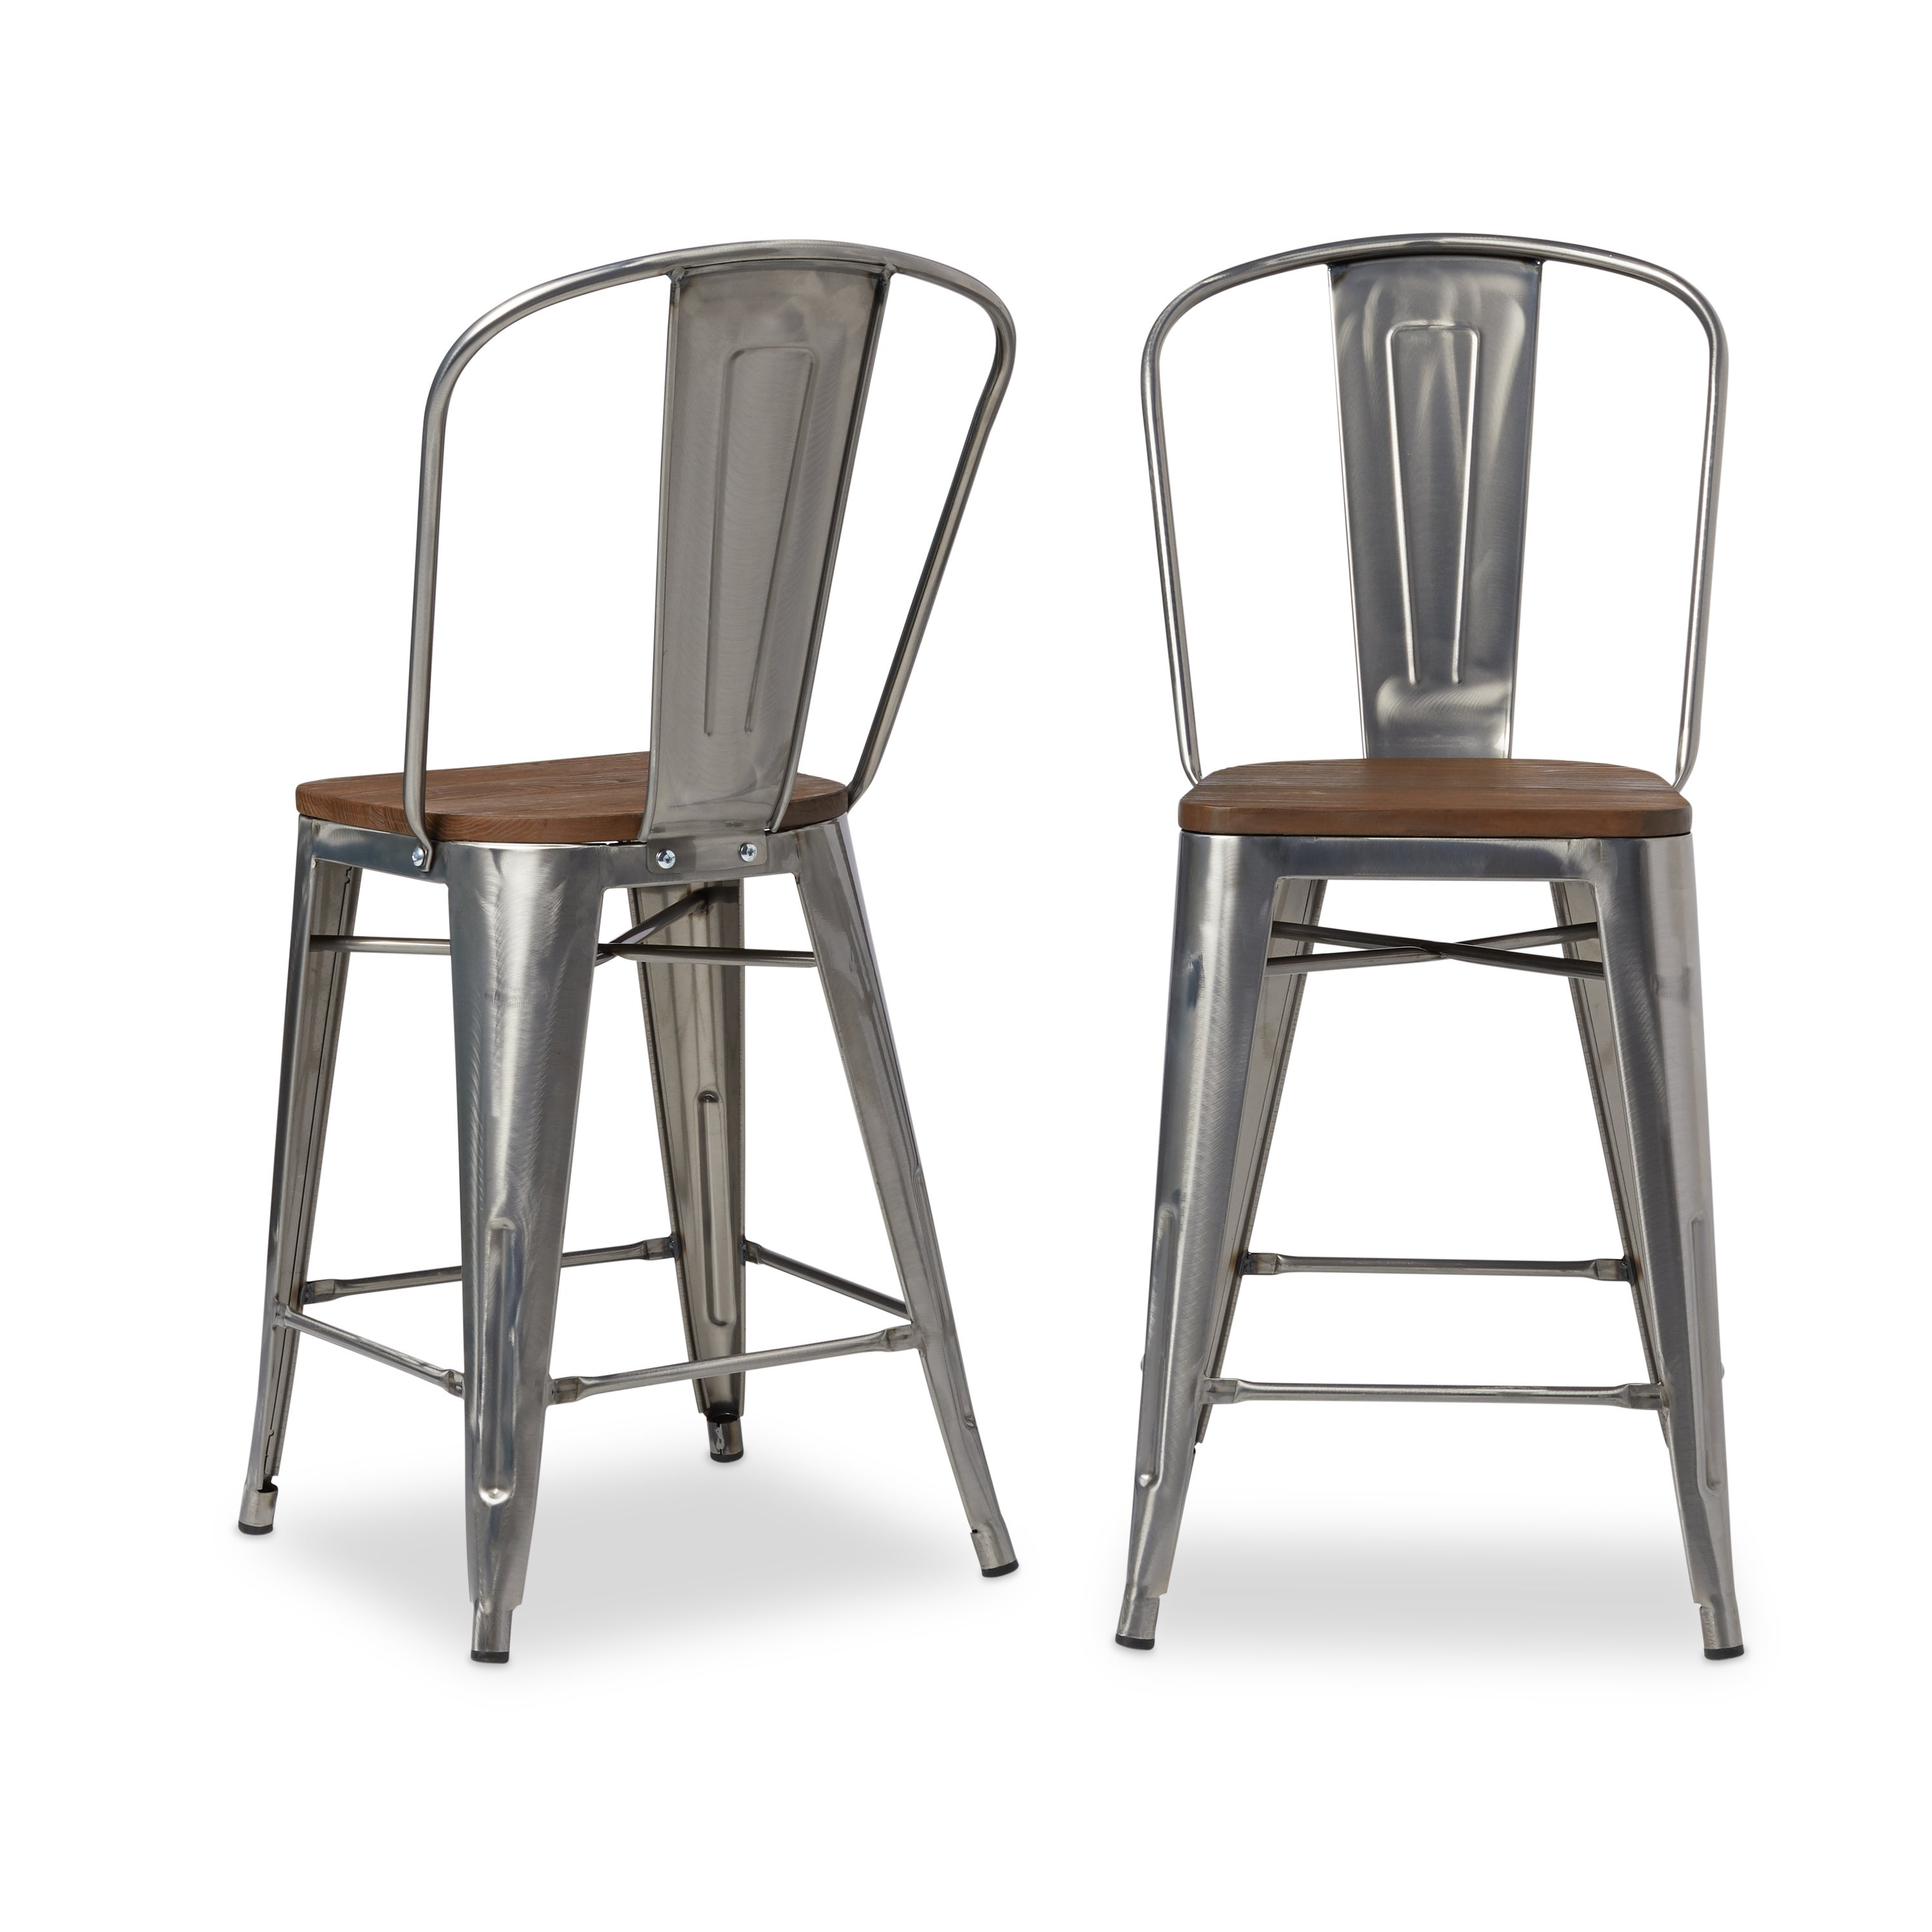 Fine Bistro Wood Seat Gunmetal Finish Counter Stools Set Of 2 Onthecornerstone Fun Painted Chair Ideas Images Onthecornerstoneorg